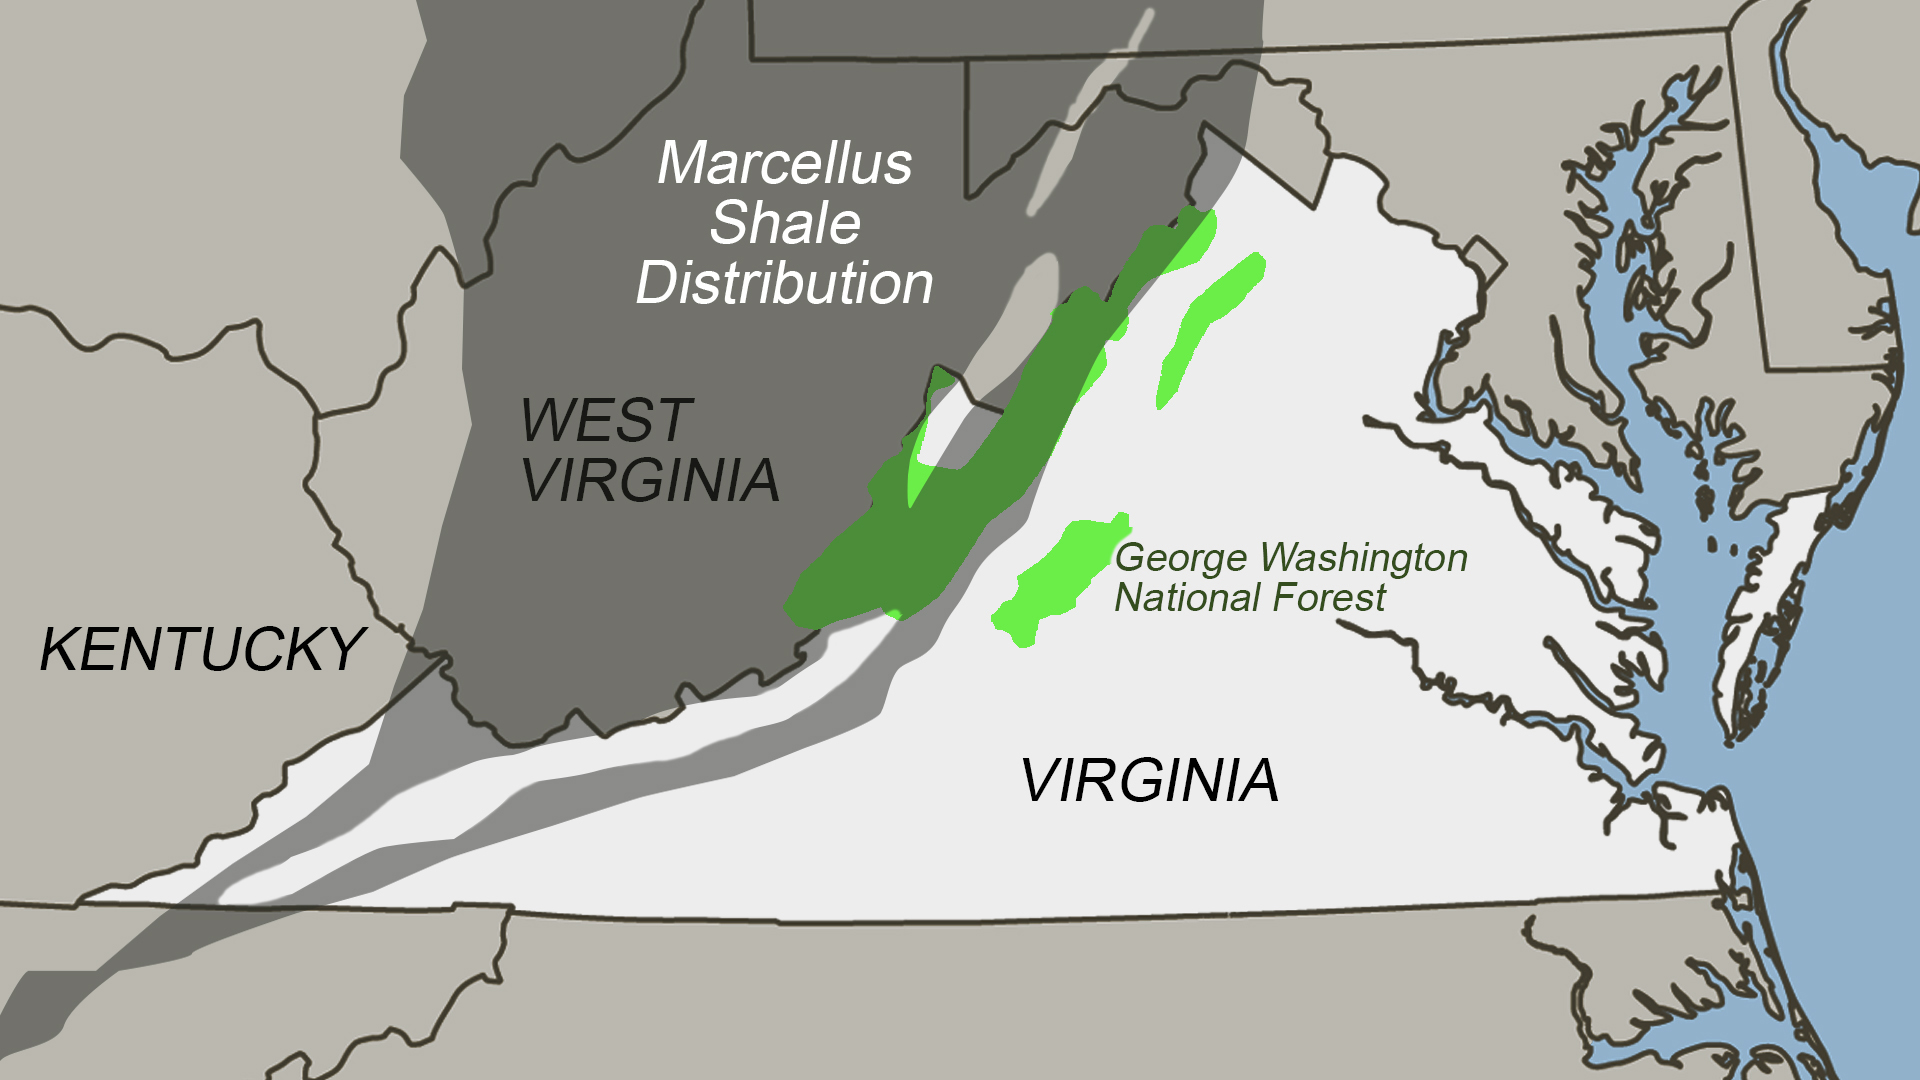 On the radar at the GW National Forest: fracking